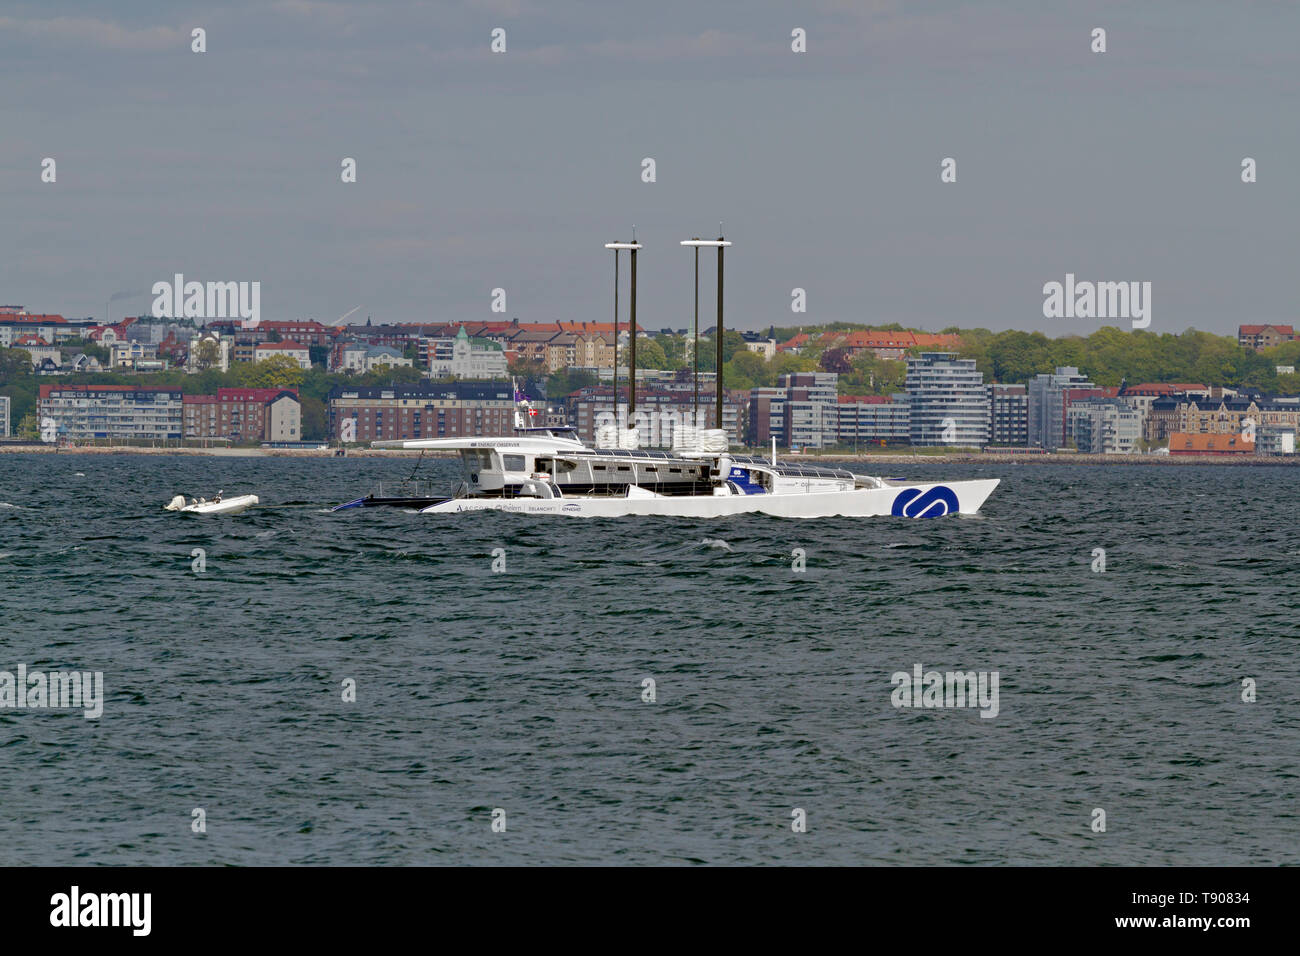 Elsinore, Denmark, 15th May, 2019 - afternoon. En route for presentation in Copenhagen tomorrow the ENERGY OBSERVER took a short break in the Sound outside the north harbour in Elsinore just before Kronborg. On its odyssey around the world this hydrogen powered vessel with zero greenhouse gas or fine particle emissions will moor at Ofelia Plads in the inner harbour of Copenhagen to demonstrate its energy and energy storage system 100% based on solar and wind energy. The ENERGY OBSERVER will stay in Copenhagen until Saturday. Credit: Niels Quist/Alamy - Stock Image